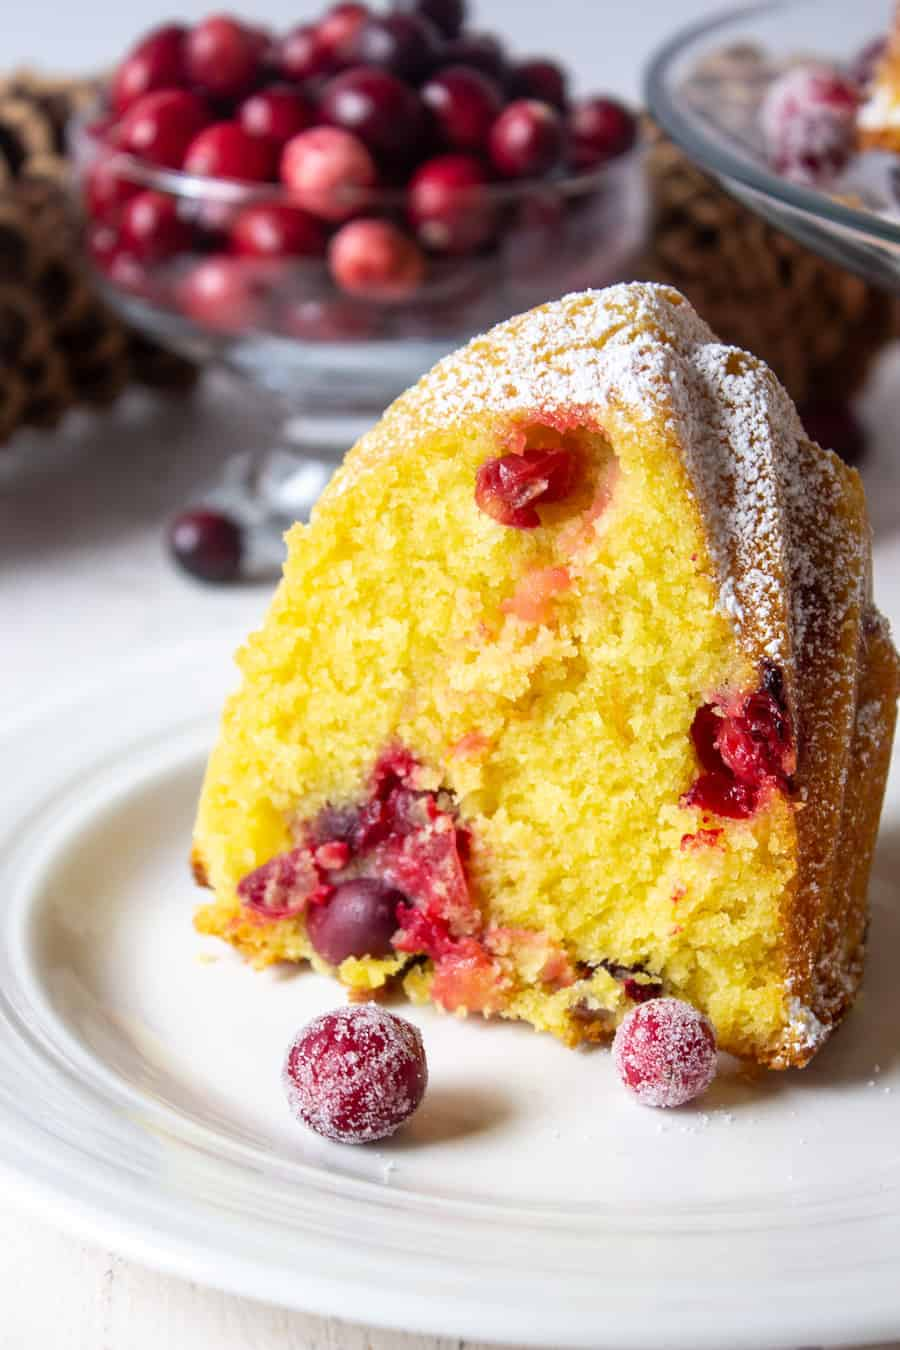 A slice of bundt cake filled with fresh cranberries and decorated with sugared cranberries.